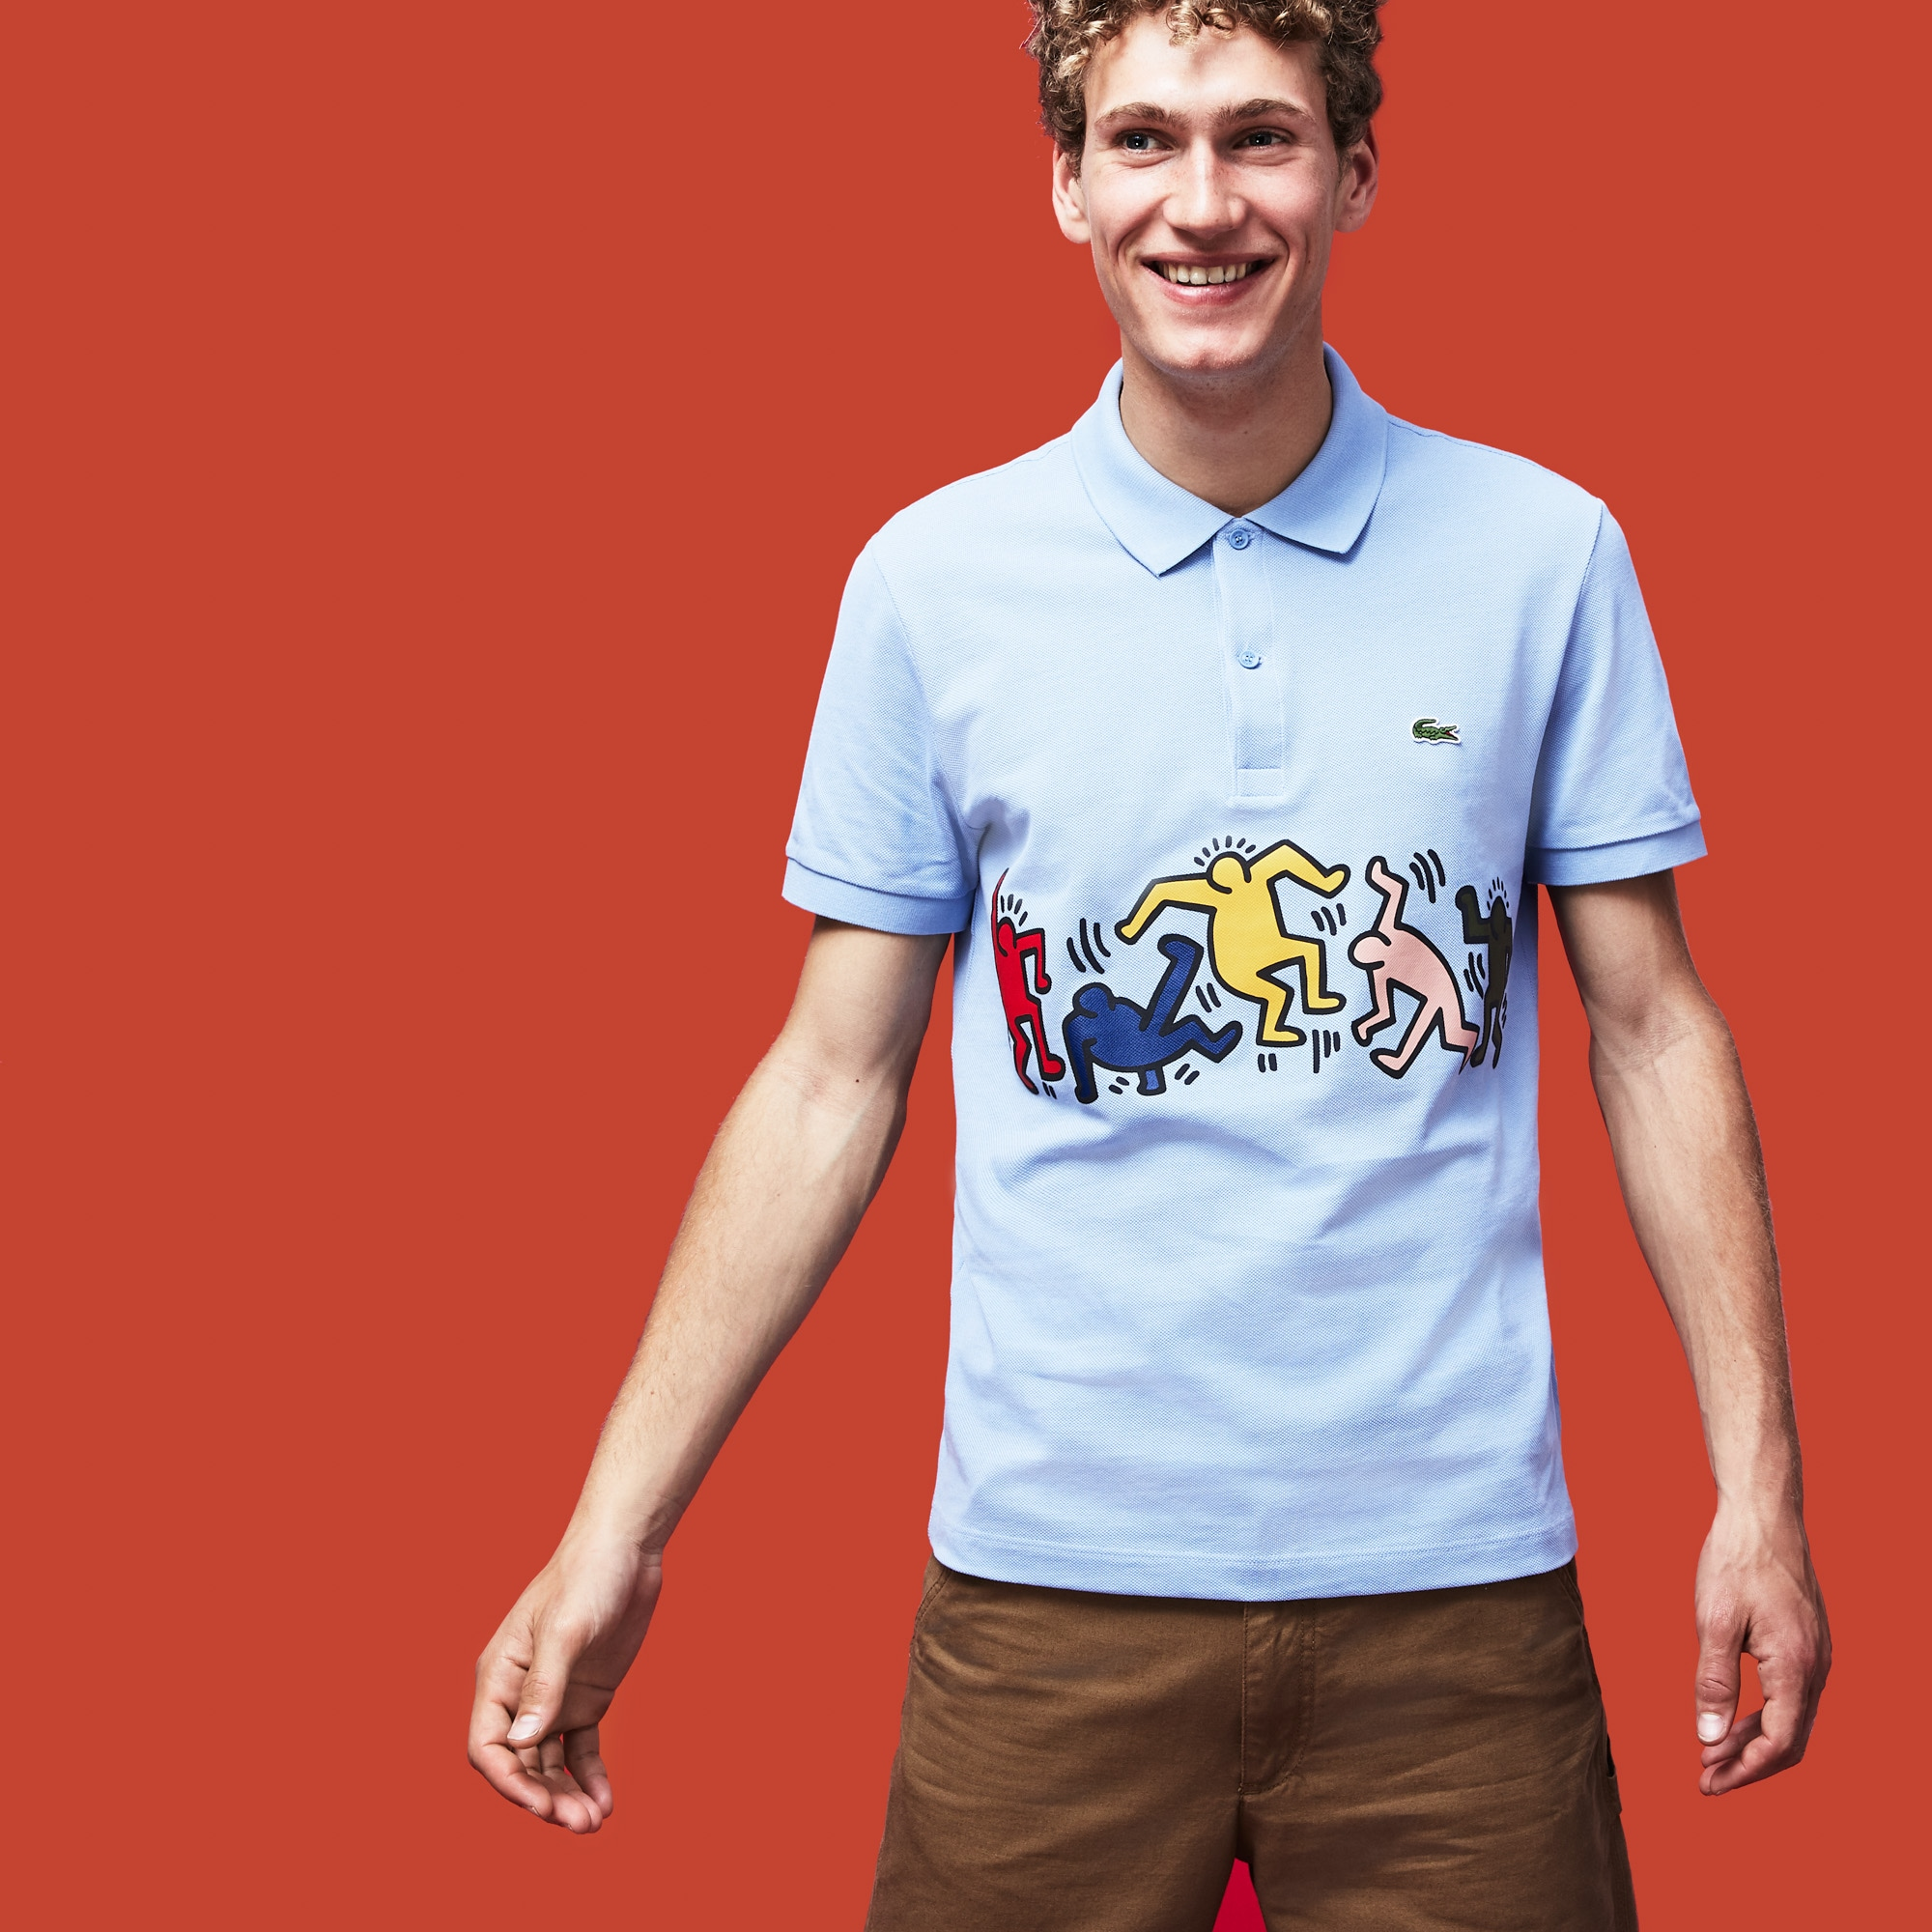 Men's Lacoste Keith Haring Print Band Regular Fit Petit Piqué Polo Shirt